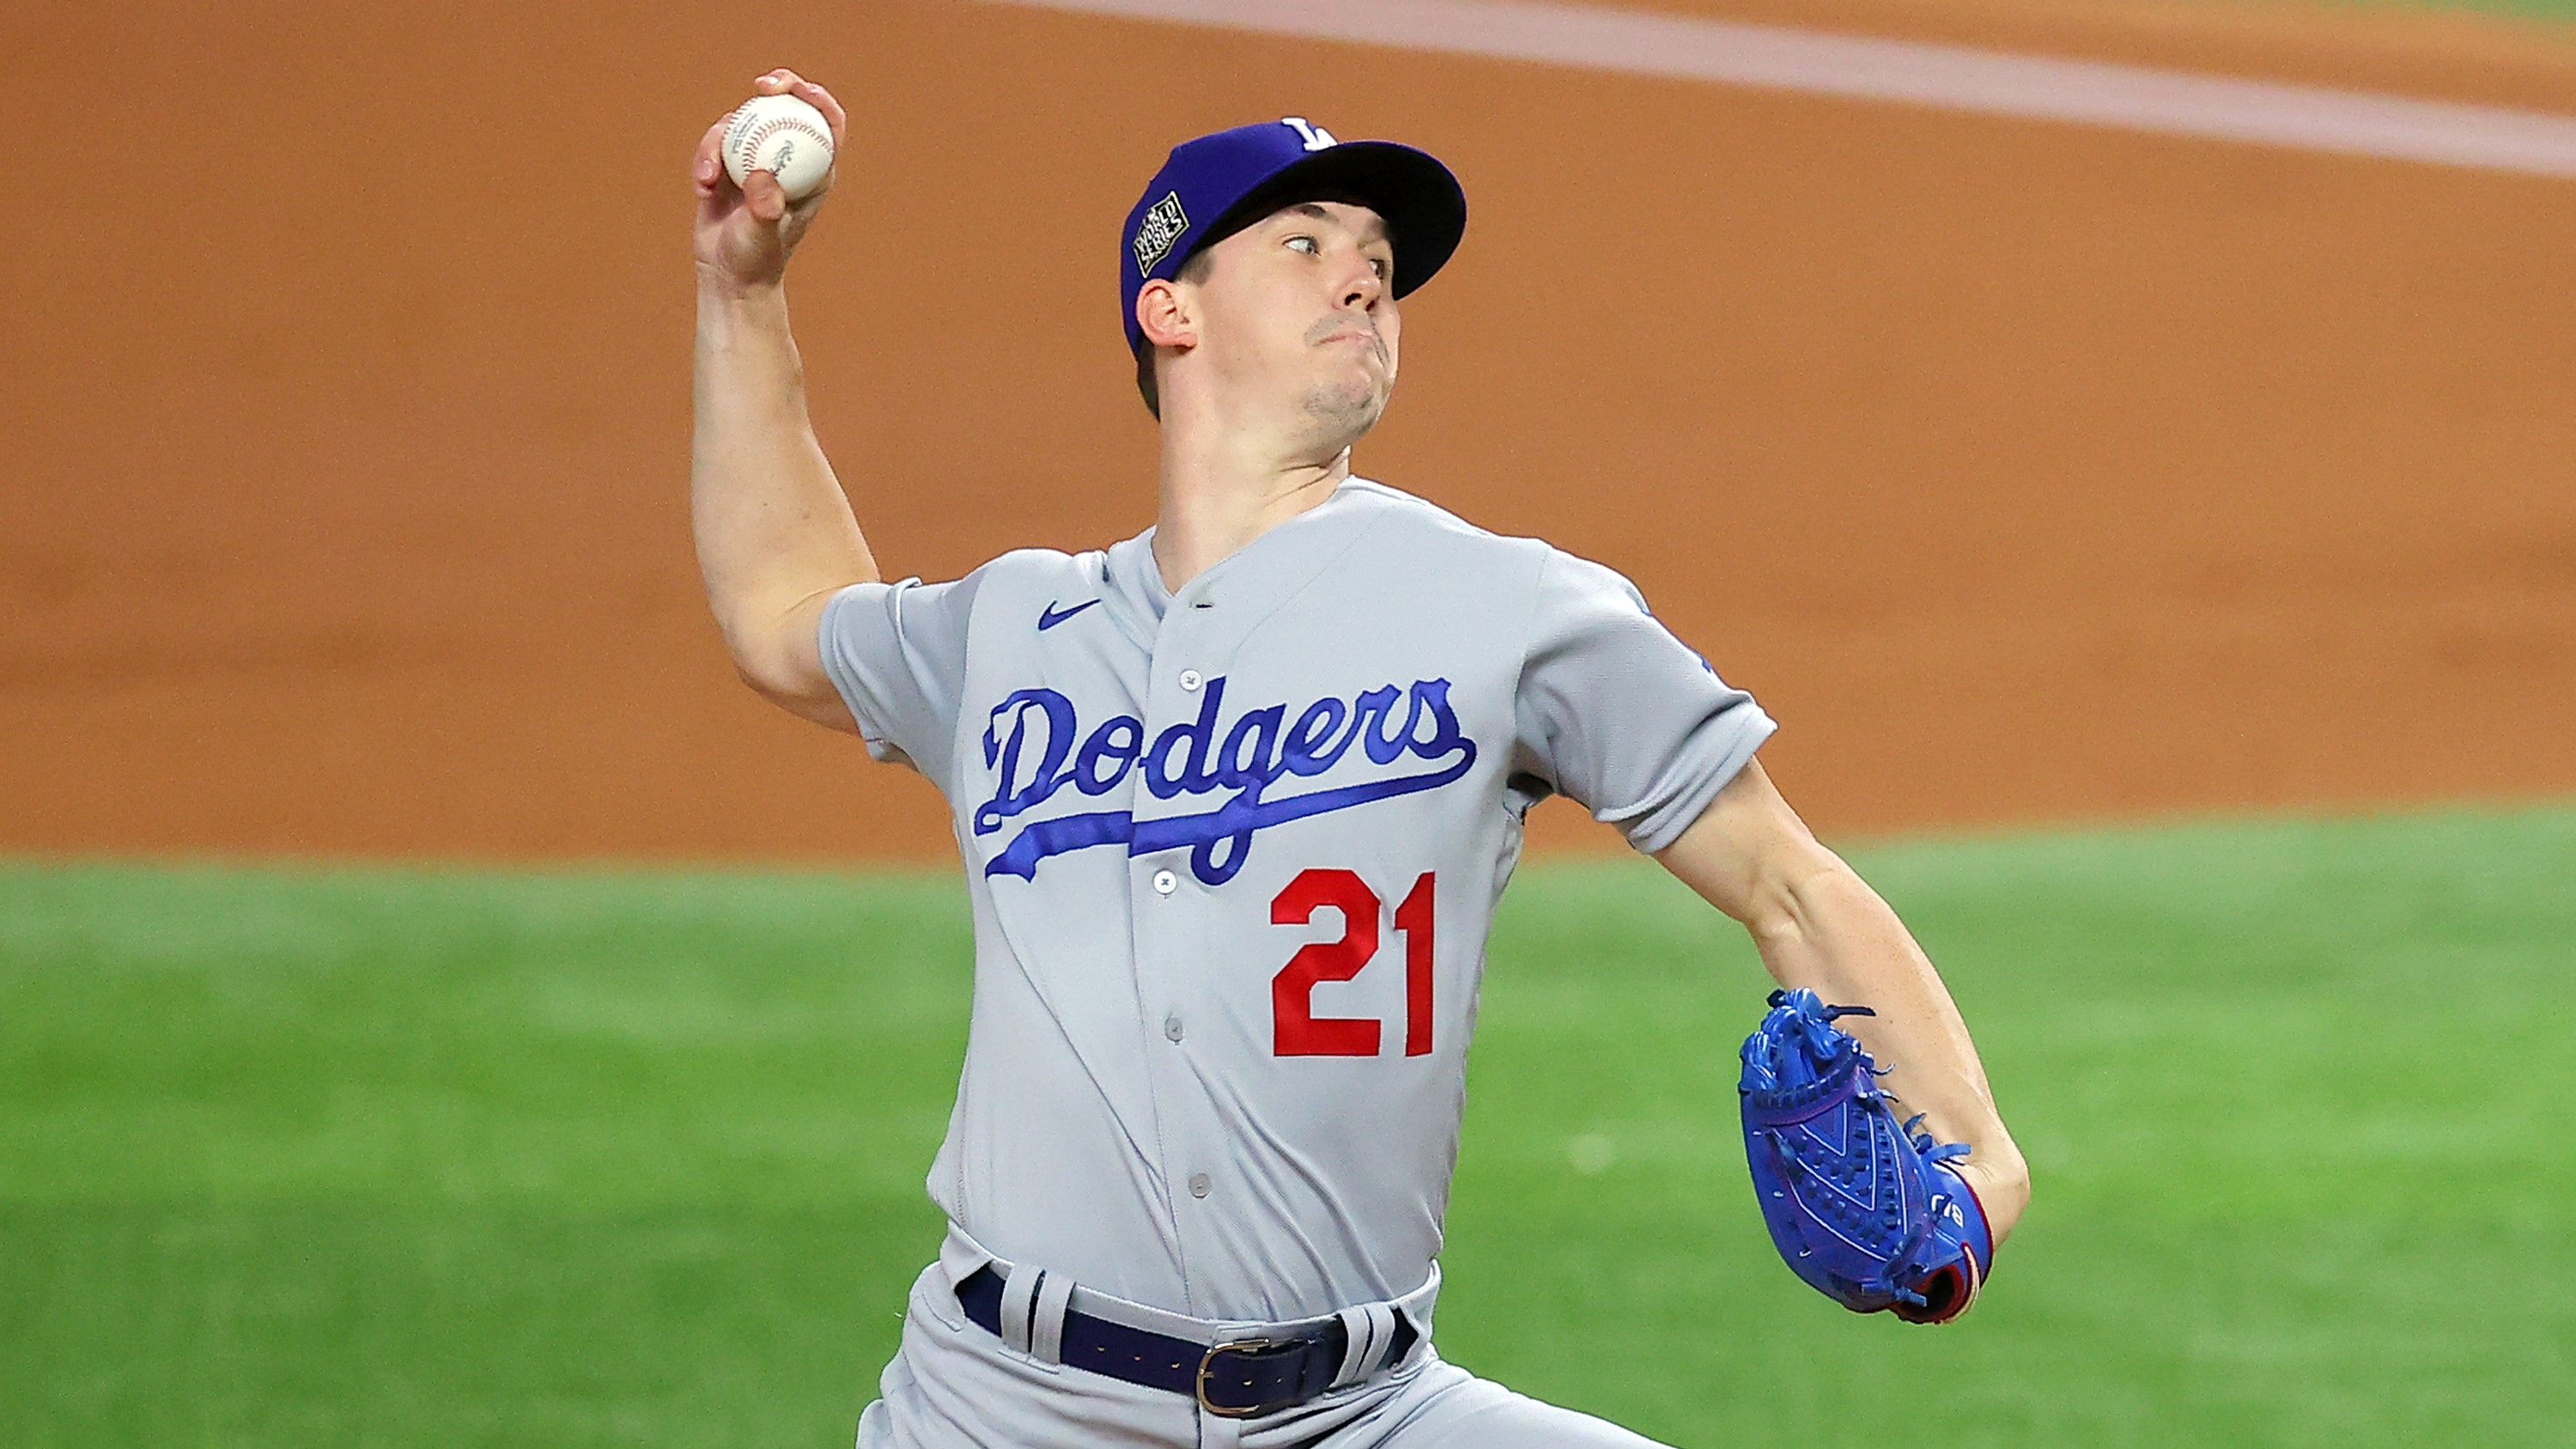 Buehler leads Dodgers over Rays 6-2 for 2-1 Series lead - CGTN